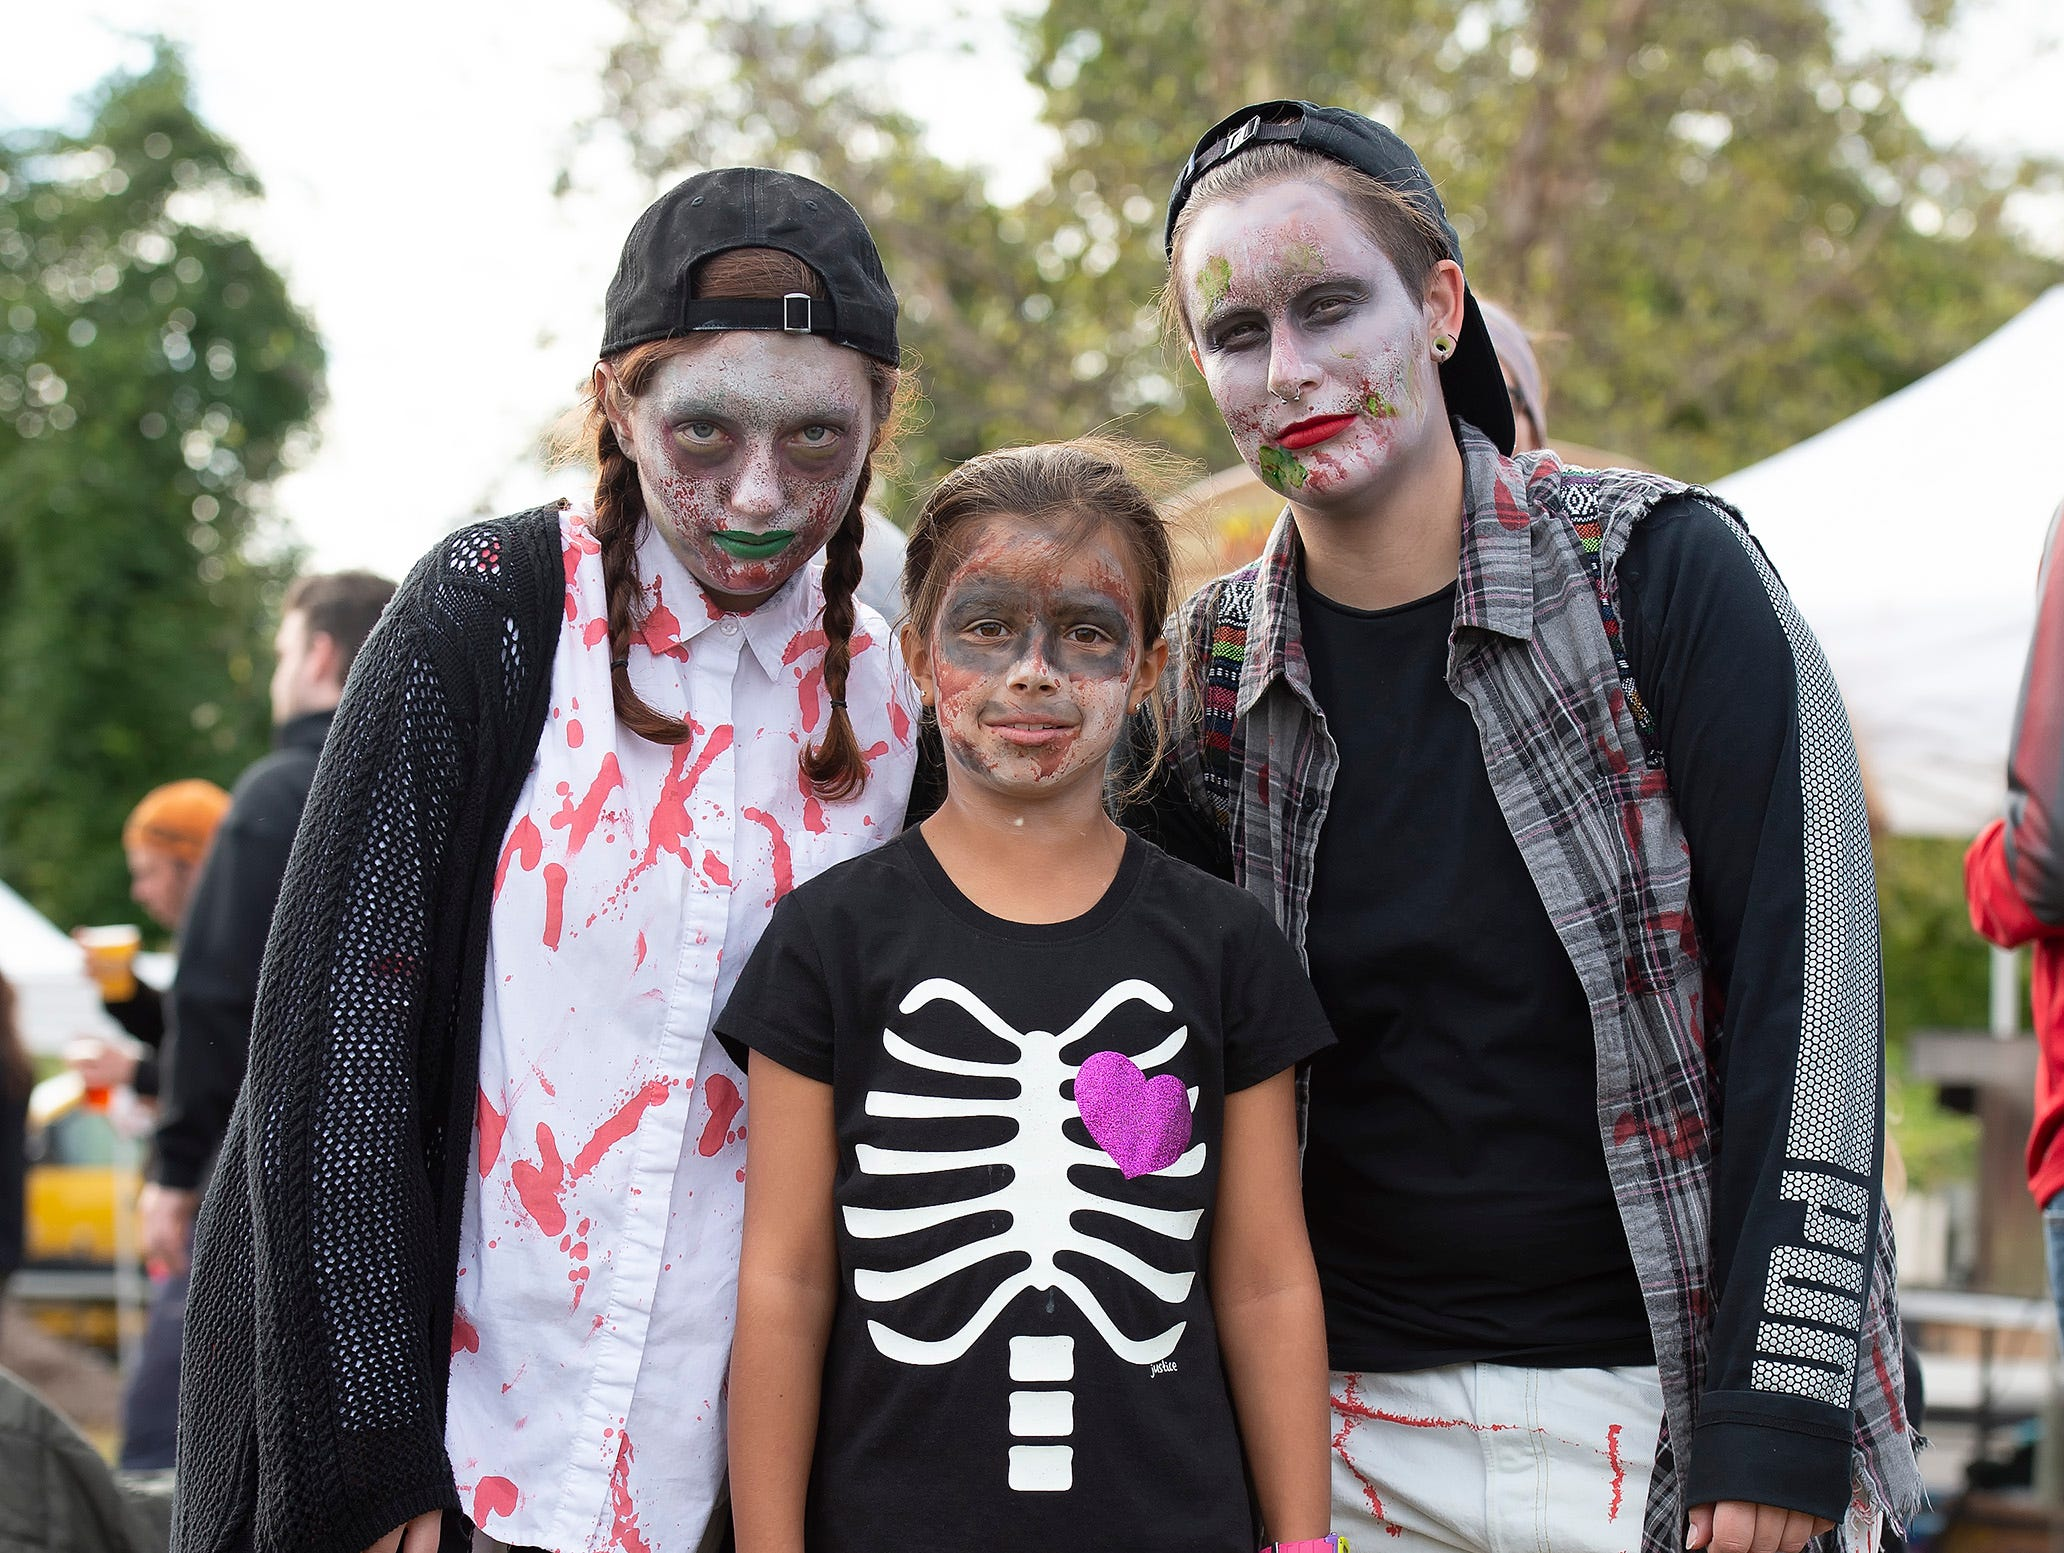 Candace Fortney, left, of Dover, Jerny Haines (10) of Milton and AJ Jackson of Dover pose for a photo at Milton Zombie Fest.